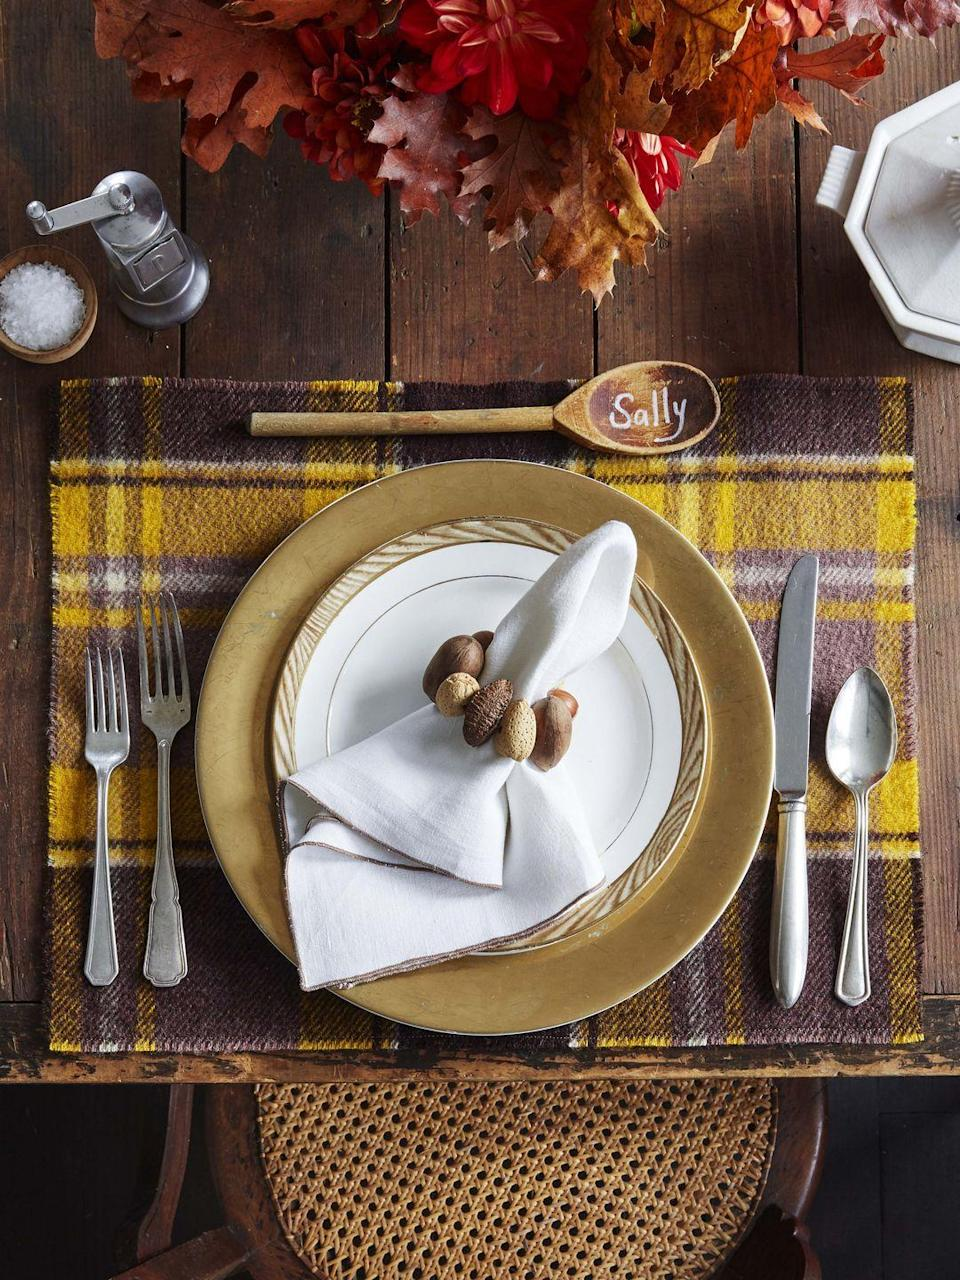 """<p>The hues of fall are on display in this warm and cozy table setting. <strong><br></strong></p><p><strong>To make:</strong> Start by cutting a vintage wool blanket into placemats. Drill holes in nuts and thread with wire or twine to create napkin rings. Finally pen guests names on new or vintage wooden spoons to create sweet place cards.</p><p><a class=""""link rapid-noclick-resp"""" href=""""https://www.amazon.com/NUTS-U-S-Hazelnuts-Artificial-Resealable/dp/B081ZLL331/ref=sr_1_1_sspa?tag=syn-yahoo-20&ascsubtag=%5Bartid%7C10050.g.2063%5Bsrc%7Cyahoo-us"""" rel=""""nofollow noopener"""" target=""""_blank"""" data-ylk=""""slk:SHOP NUTS"""">SHOP NUTS</a></p>"""